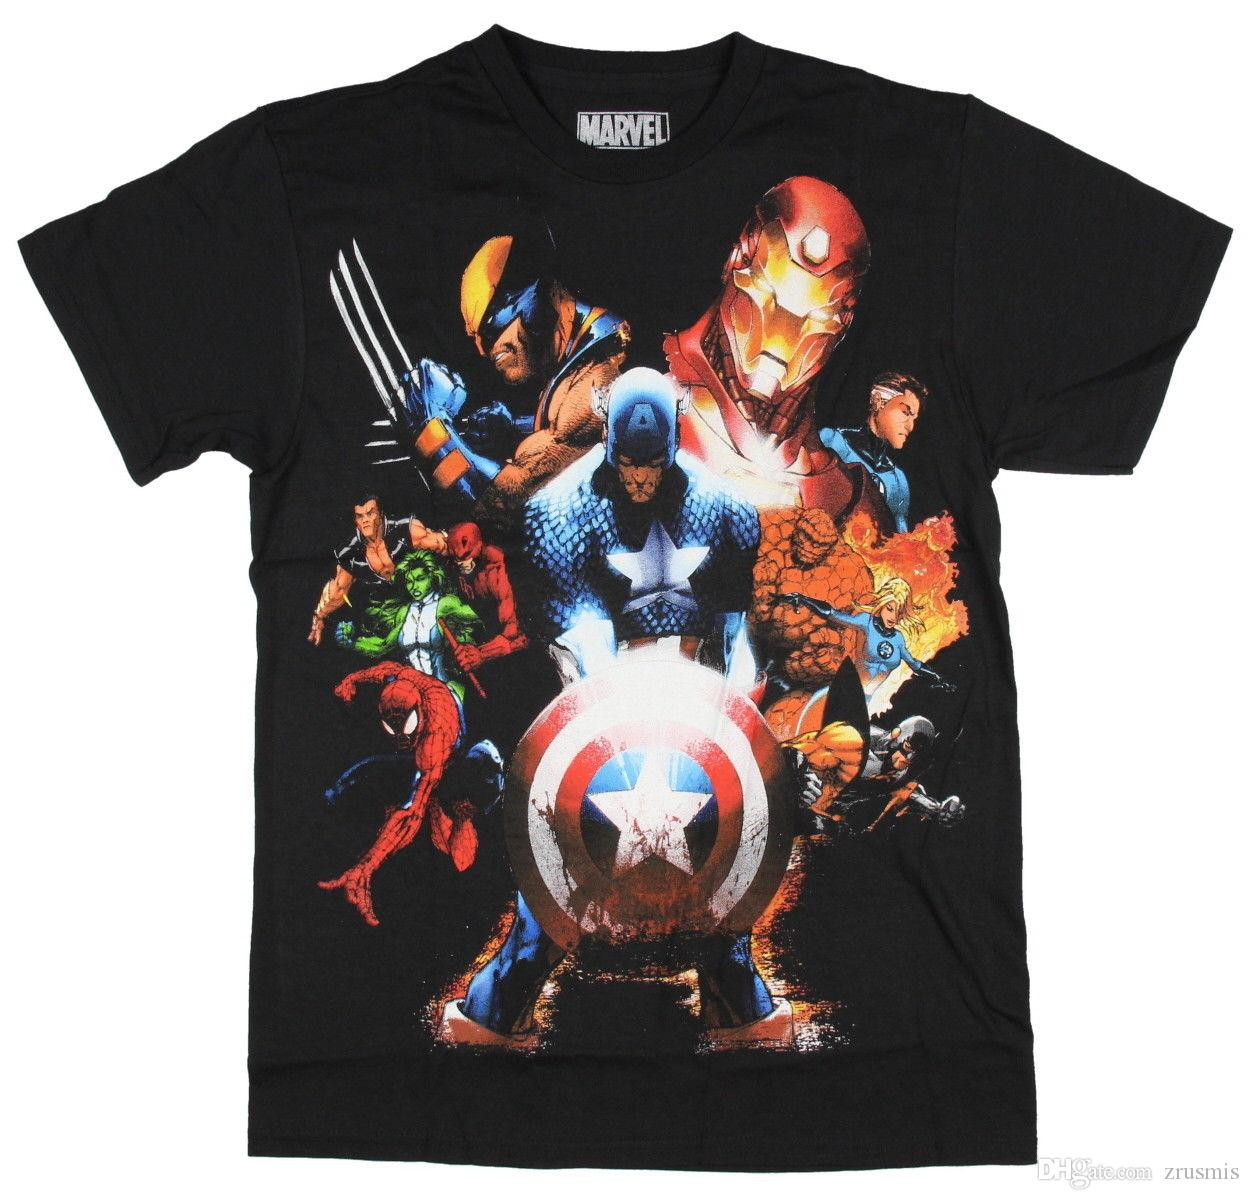 Marvel Comics Mens Soldiers Revenge T-Shirt (Small)